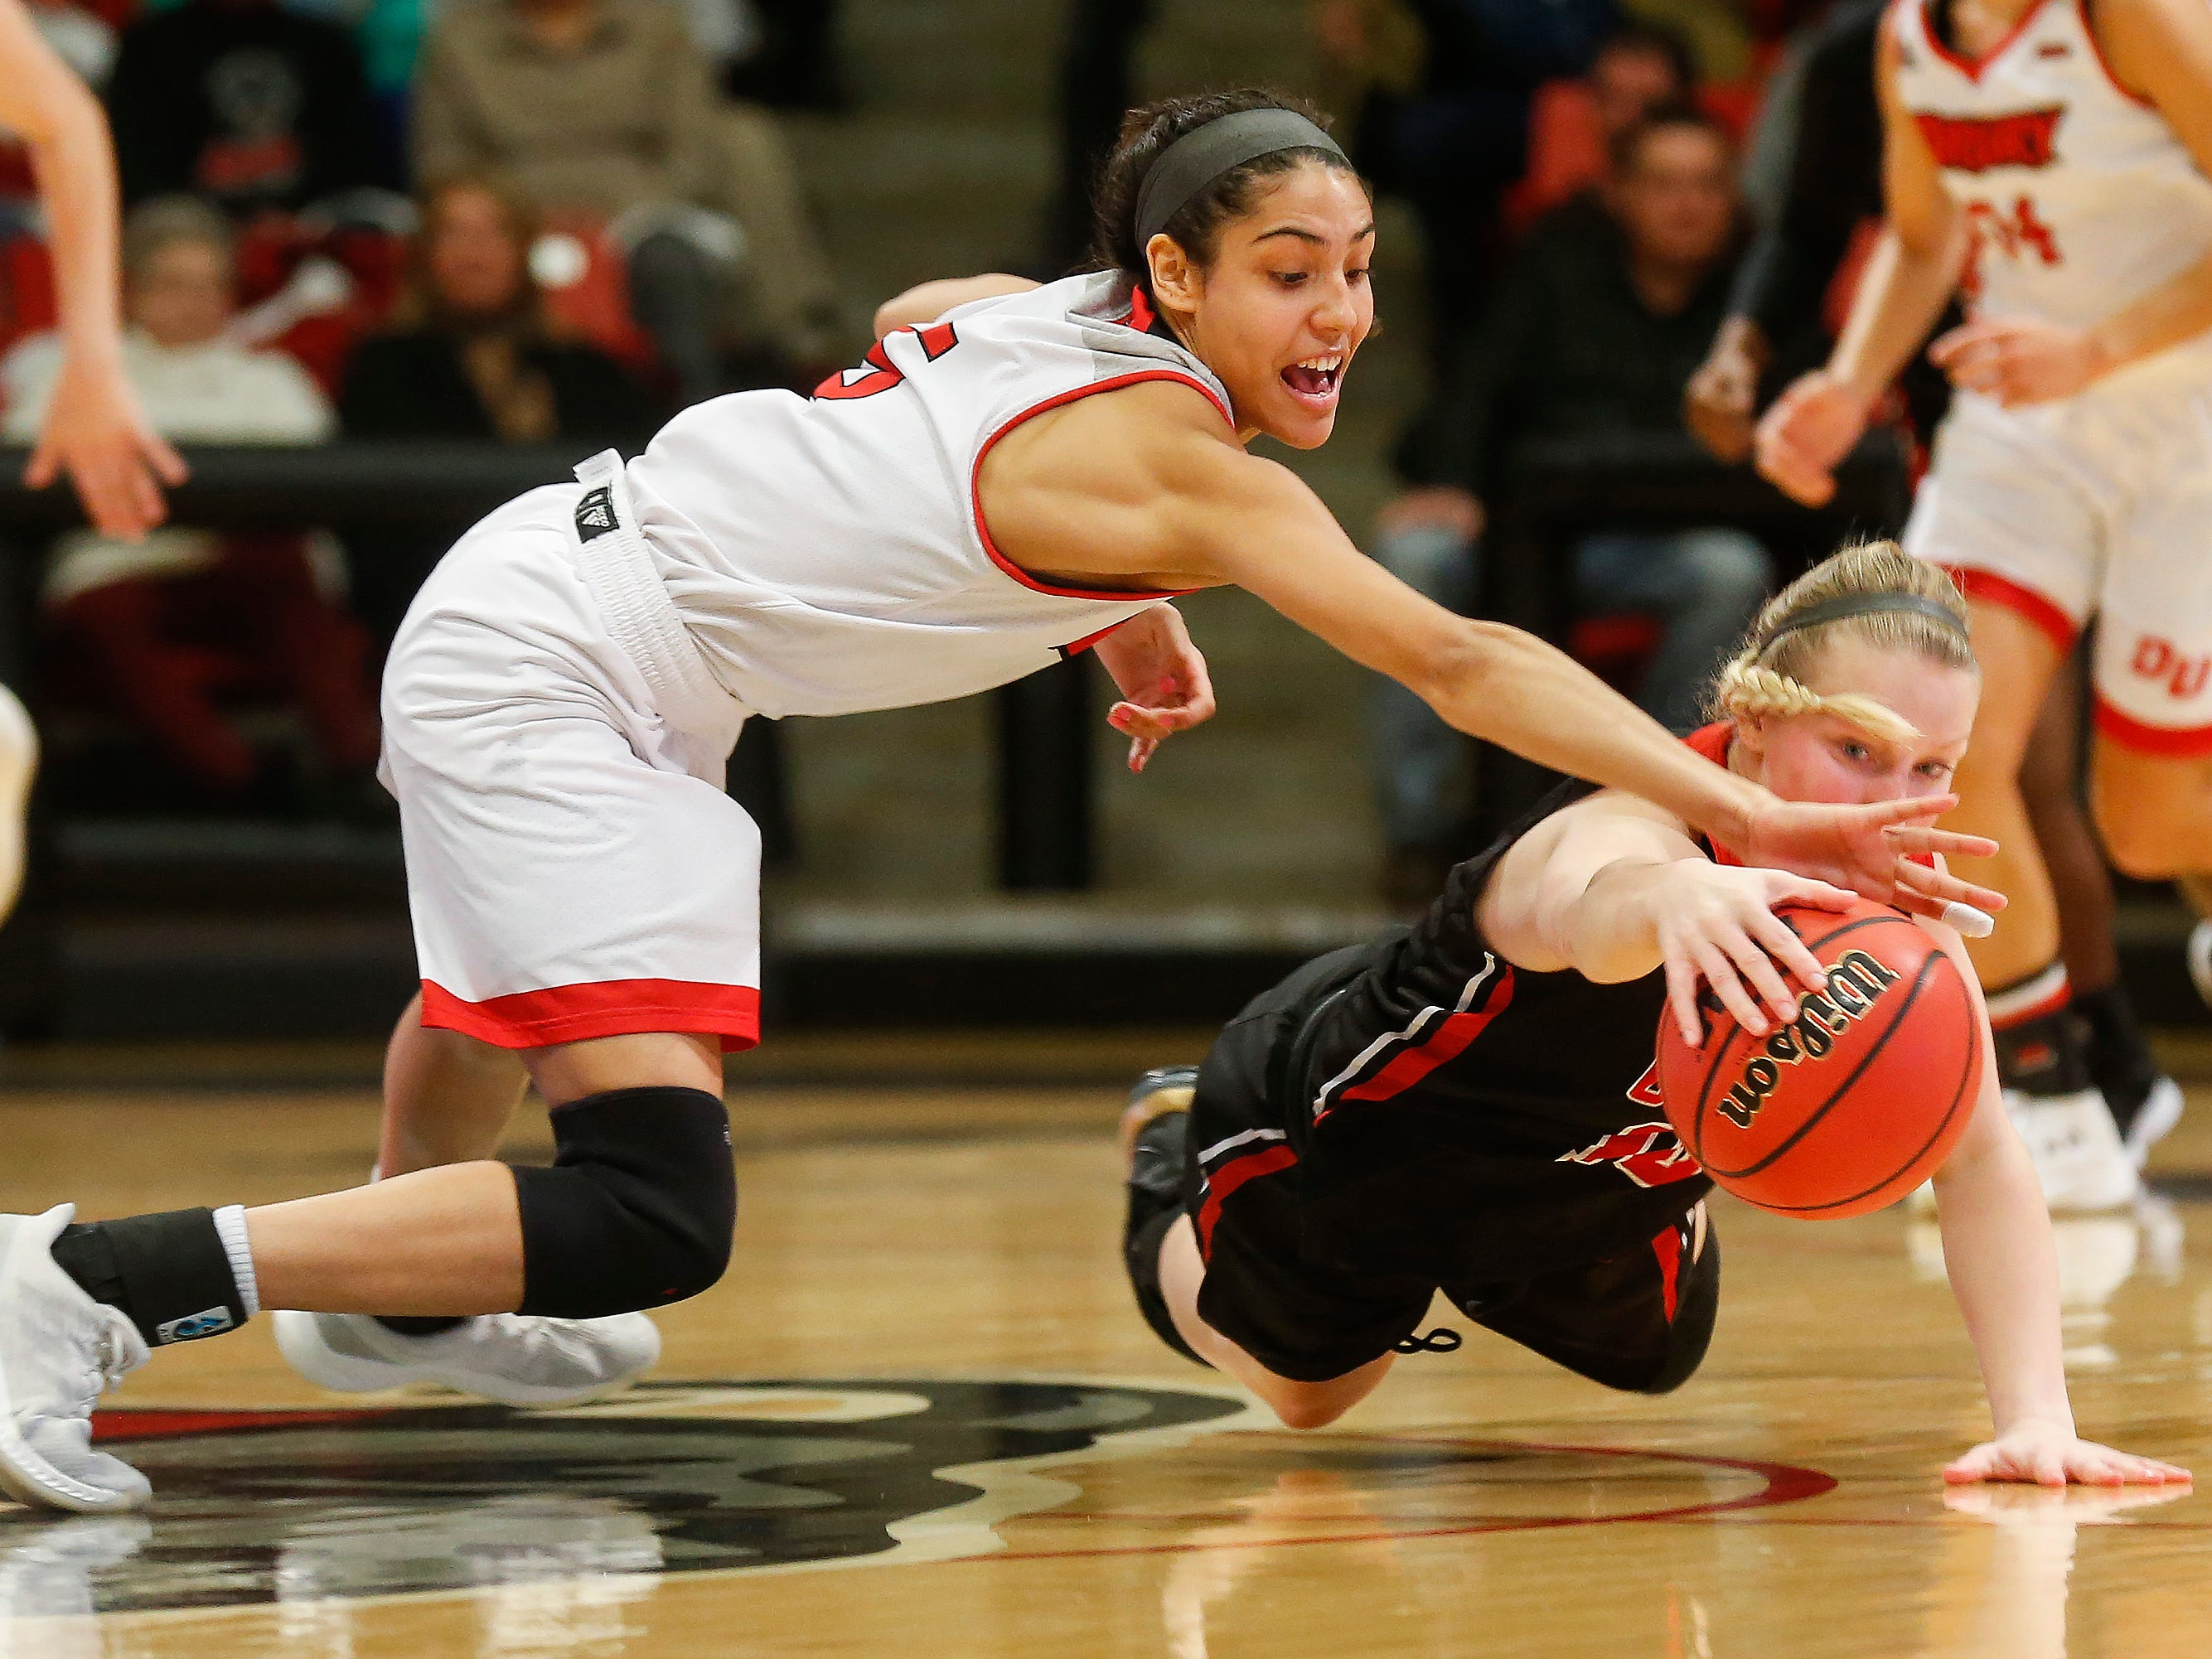 Daejah Bernard, of Drury, and Kaitlynn Henning Alex LaPorta, of the University of Missouri St. Louis, go after the loose ball during the Lady Panthers' 77-44 win over the Tritons during the Overflow the O game at the O'Reilly Family Event Center on Saturday, Feb. 9, 2019.